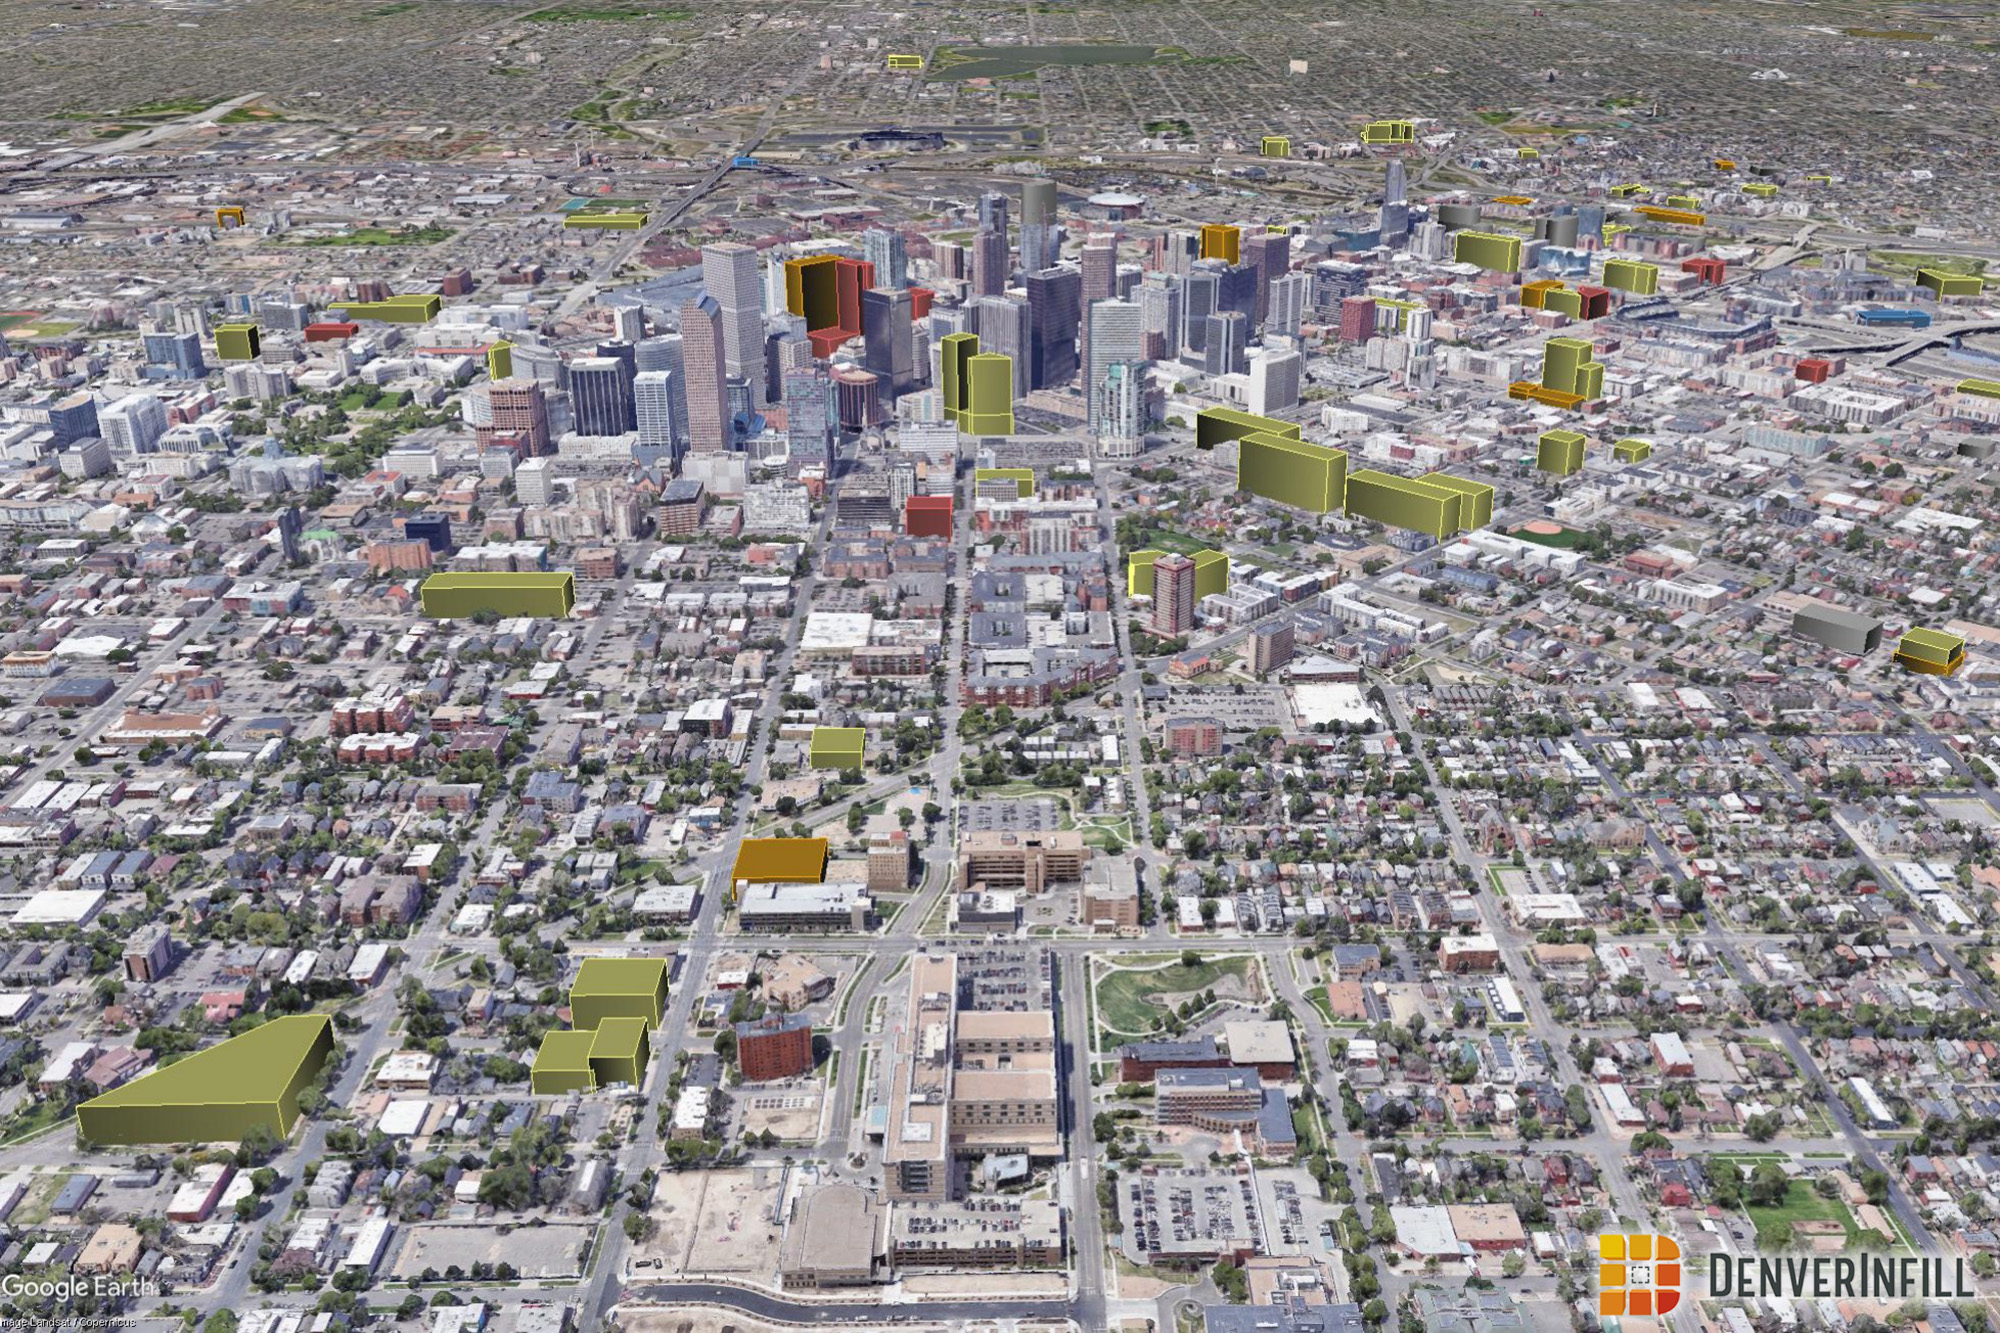 Denver 3D Future Skyline December 2018